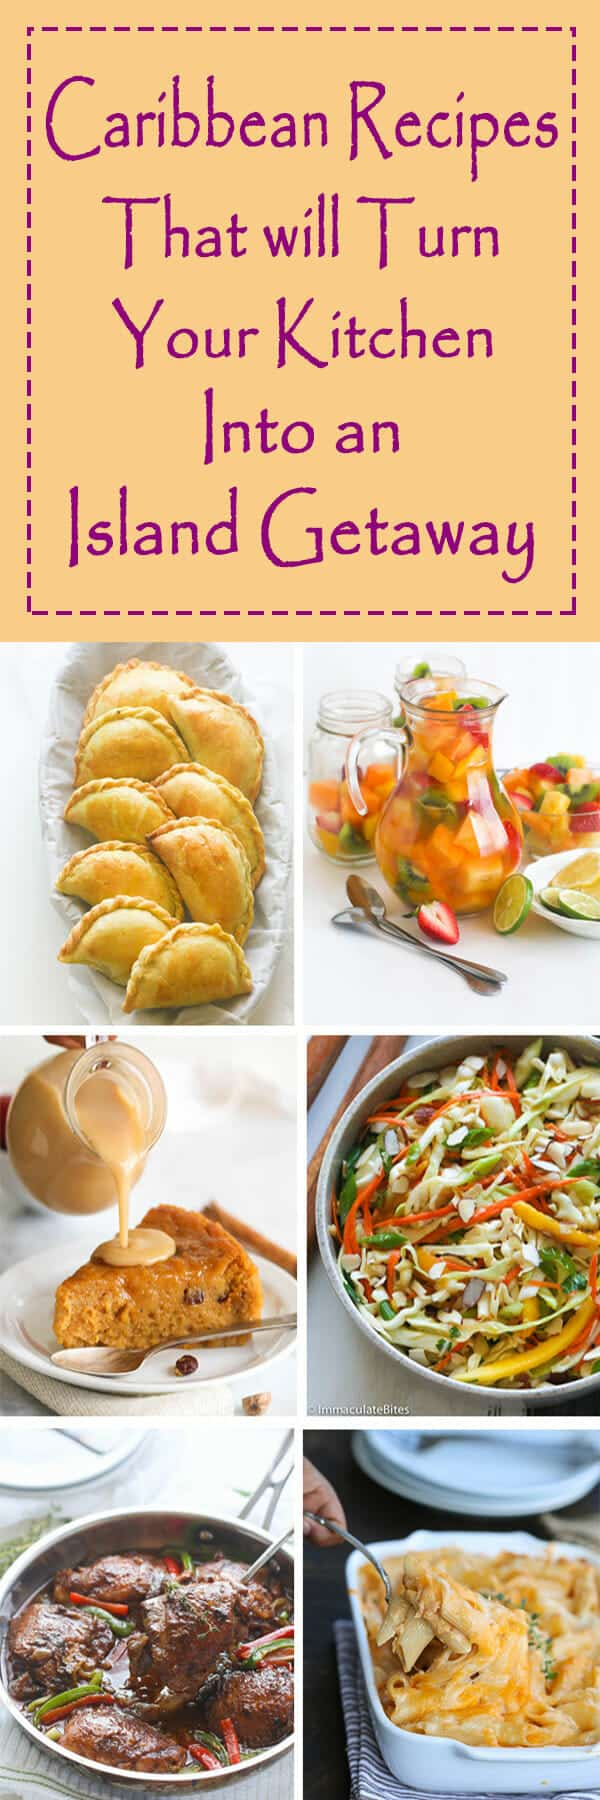 Caribbean recipes easy caribbean recipes forumfinder Images